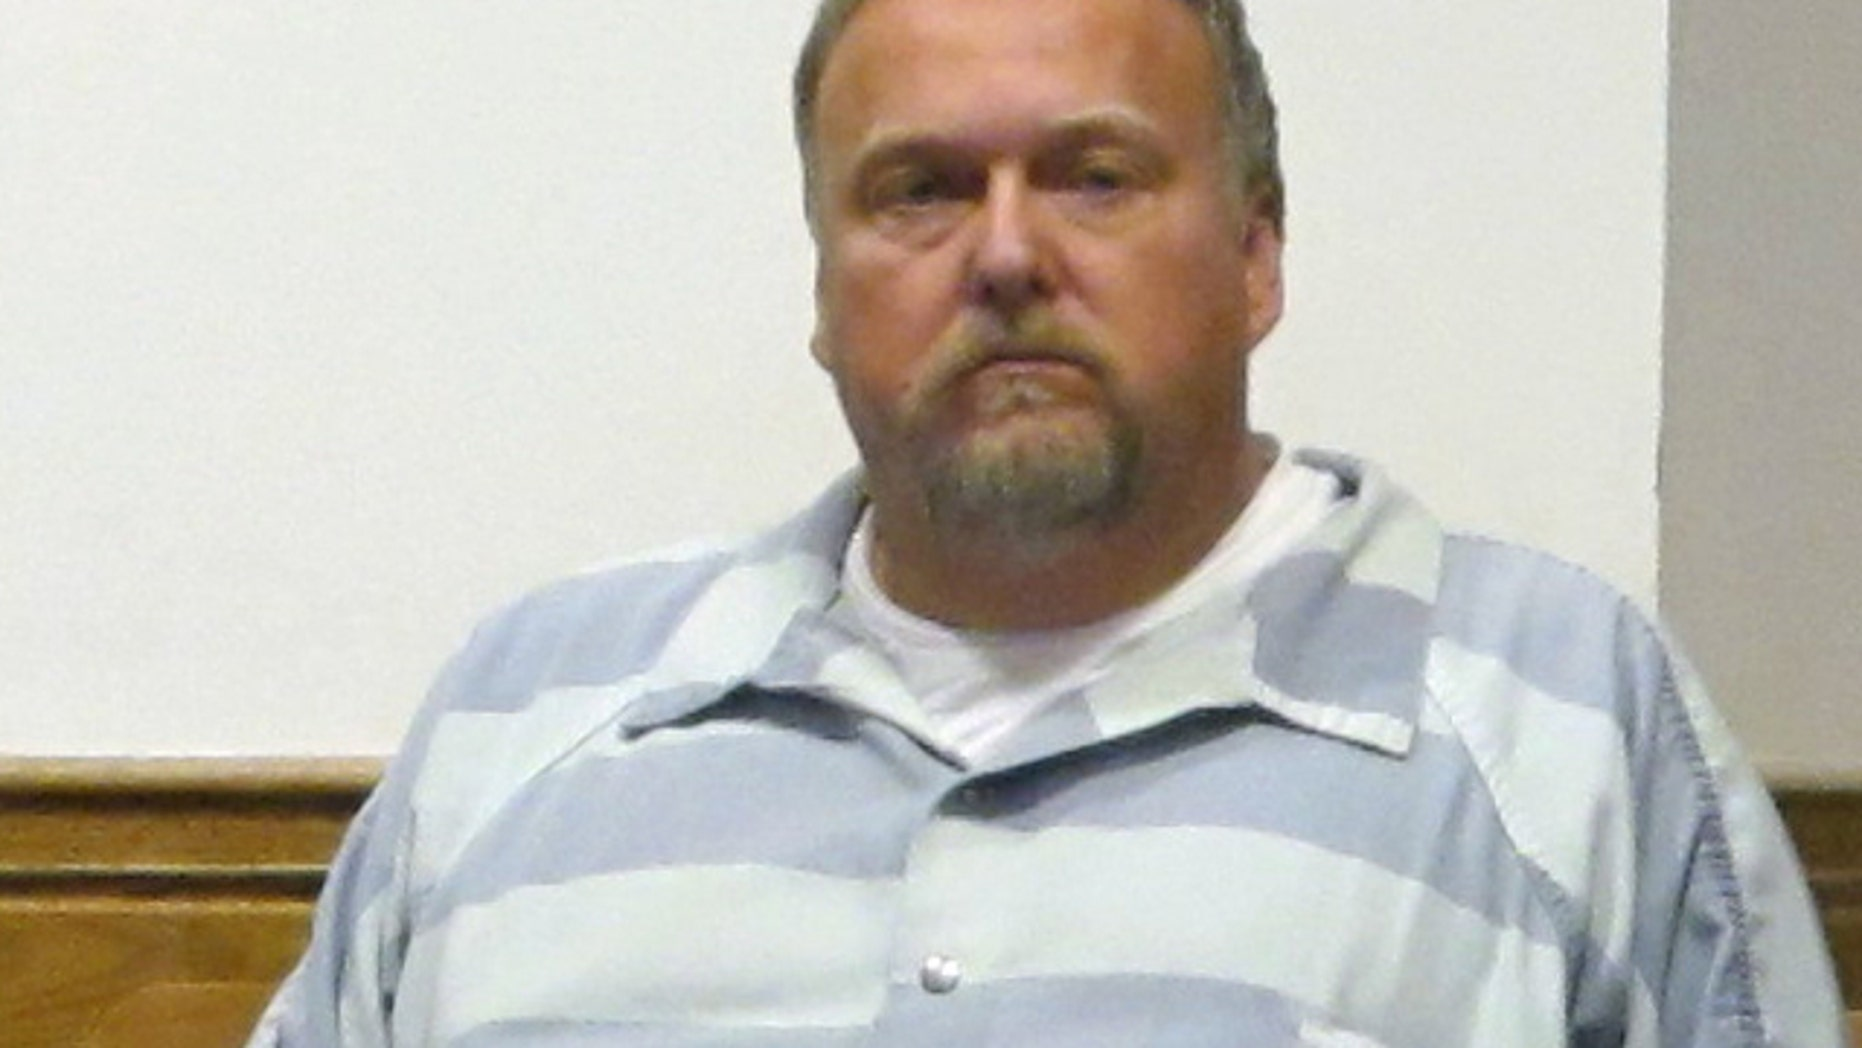 Aug. 18: Pastor Dale Richardson awaits a bond hearing in Summerville, S.C. Richardson is charged with sexually assaulting three women. A magistrate denied bond Thursday for Richardson.